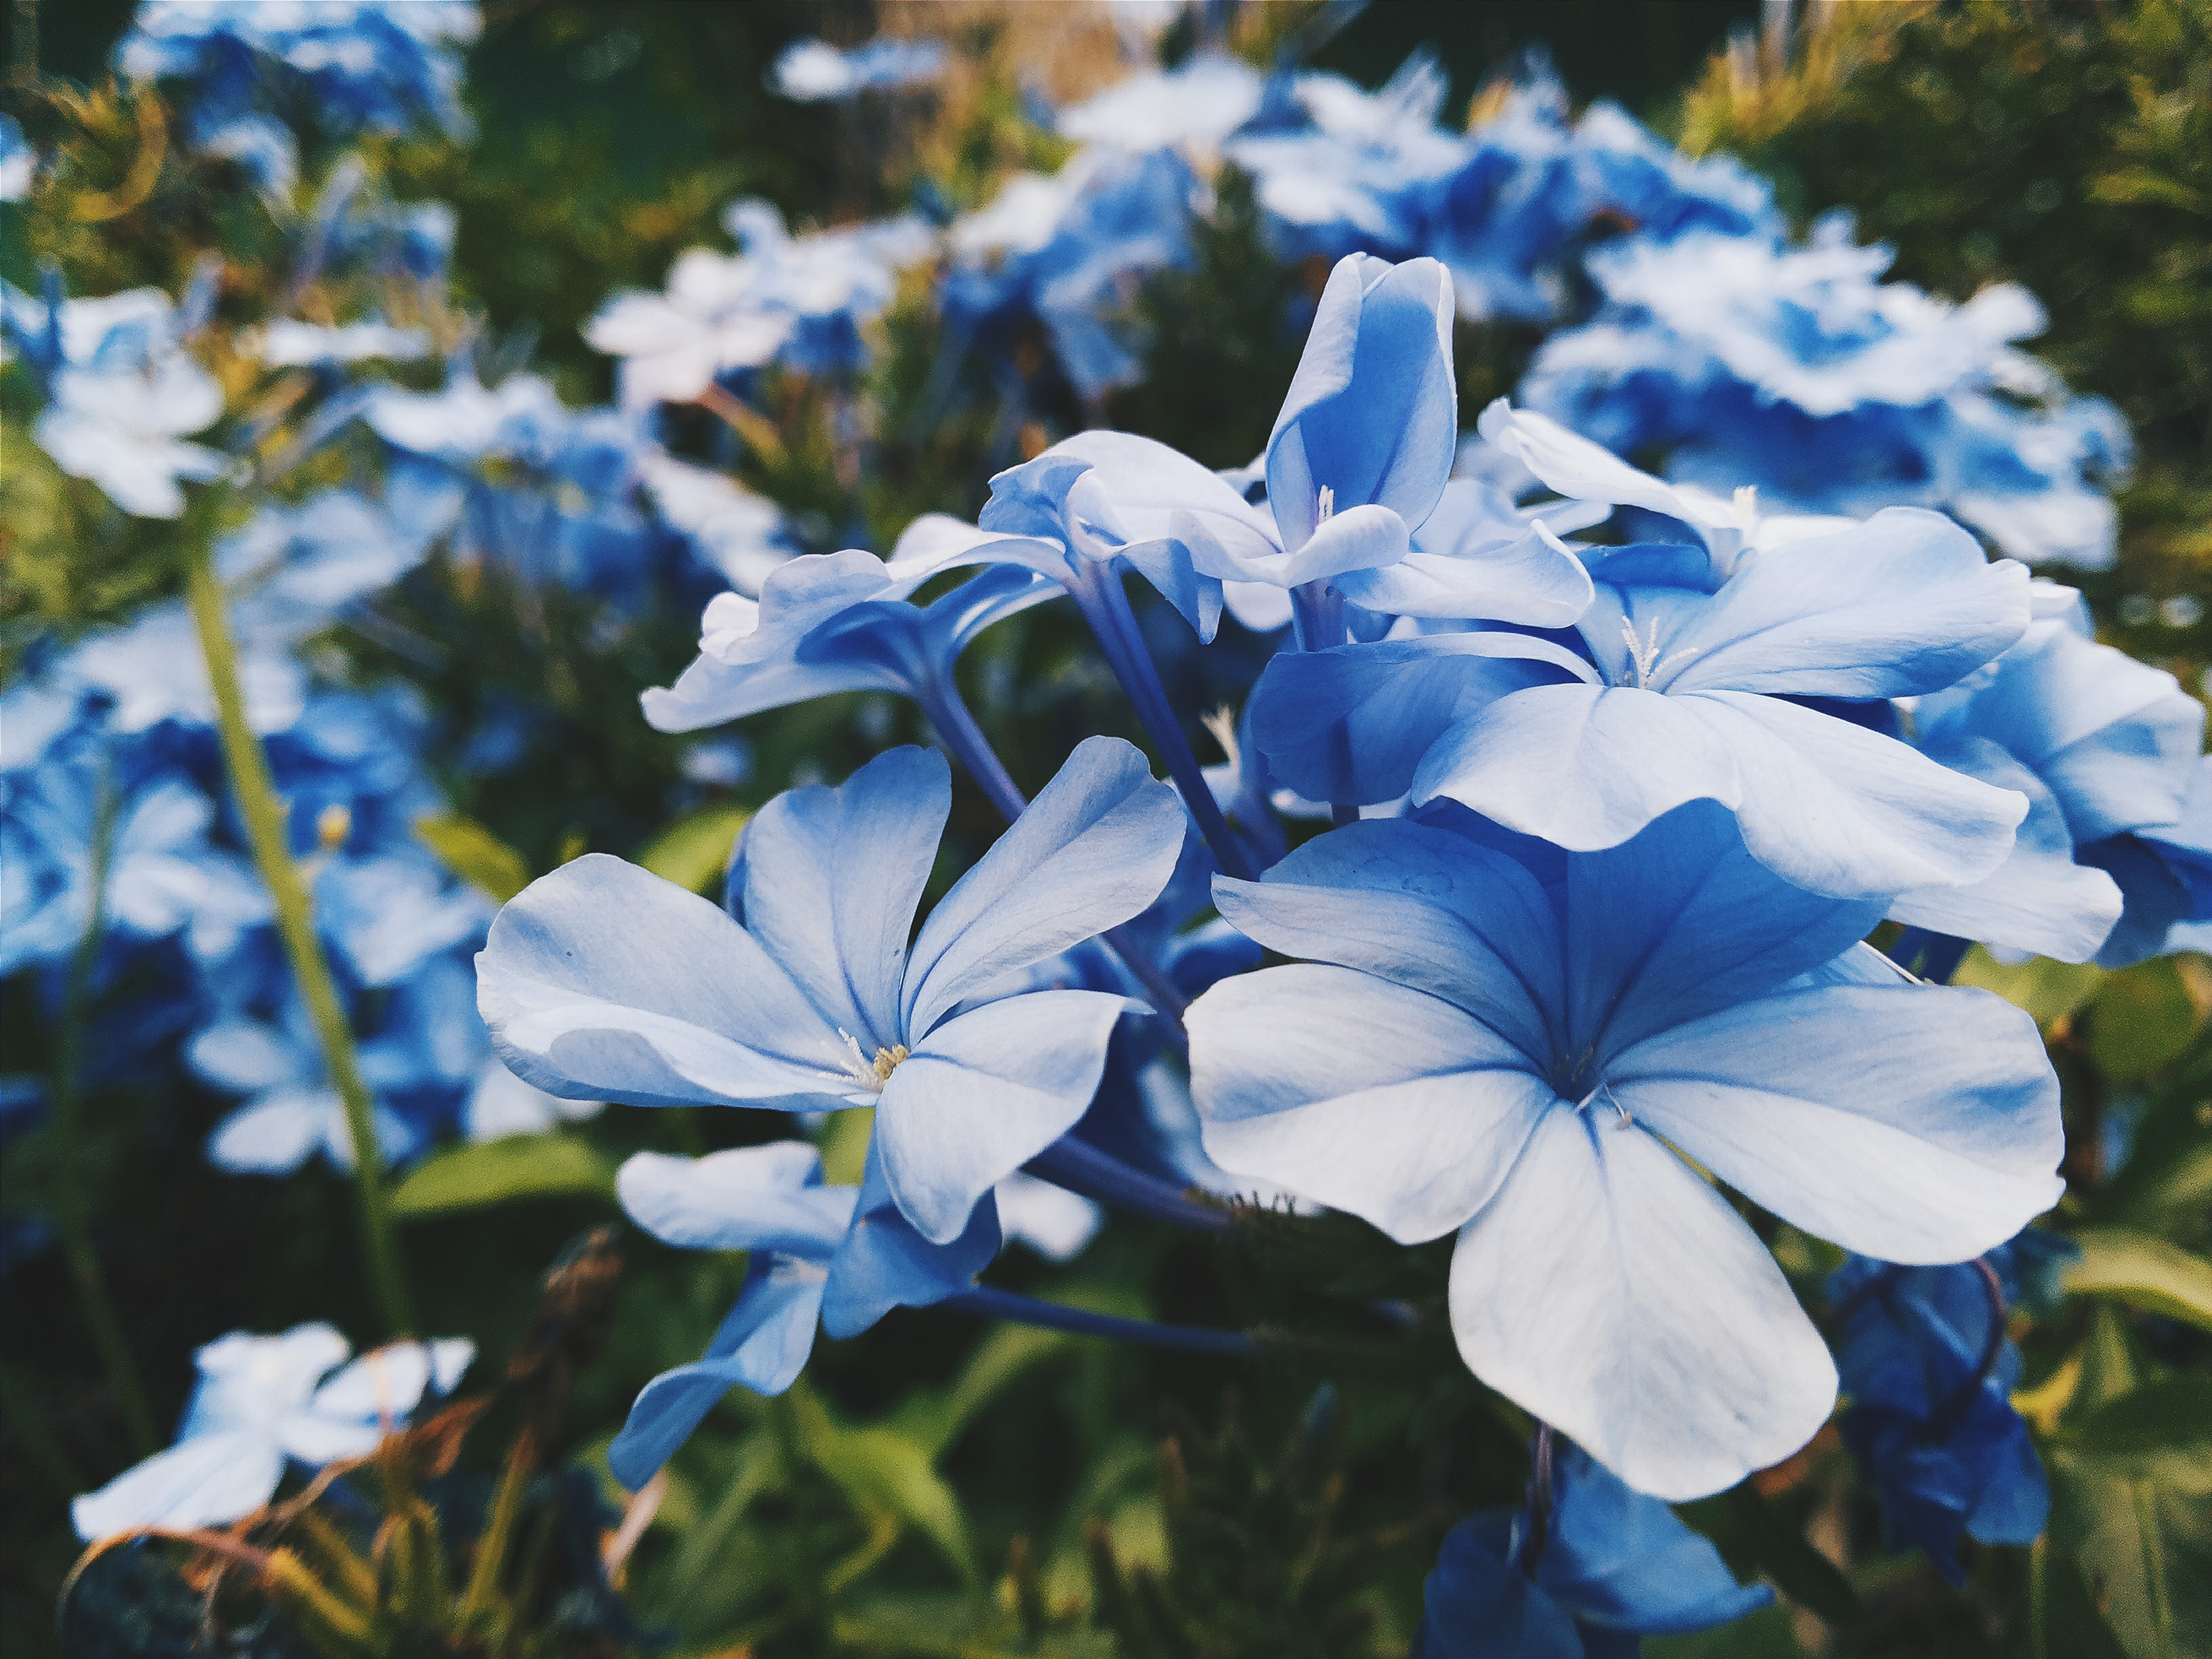 Close-up of light blue flowers with large petals in a garden